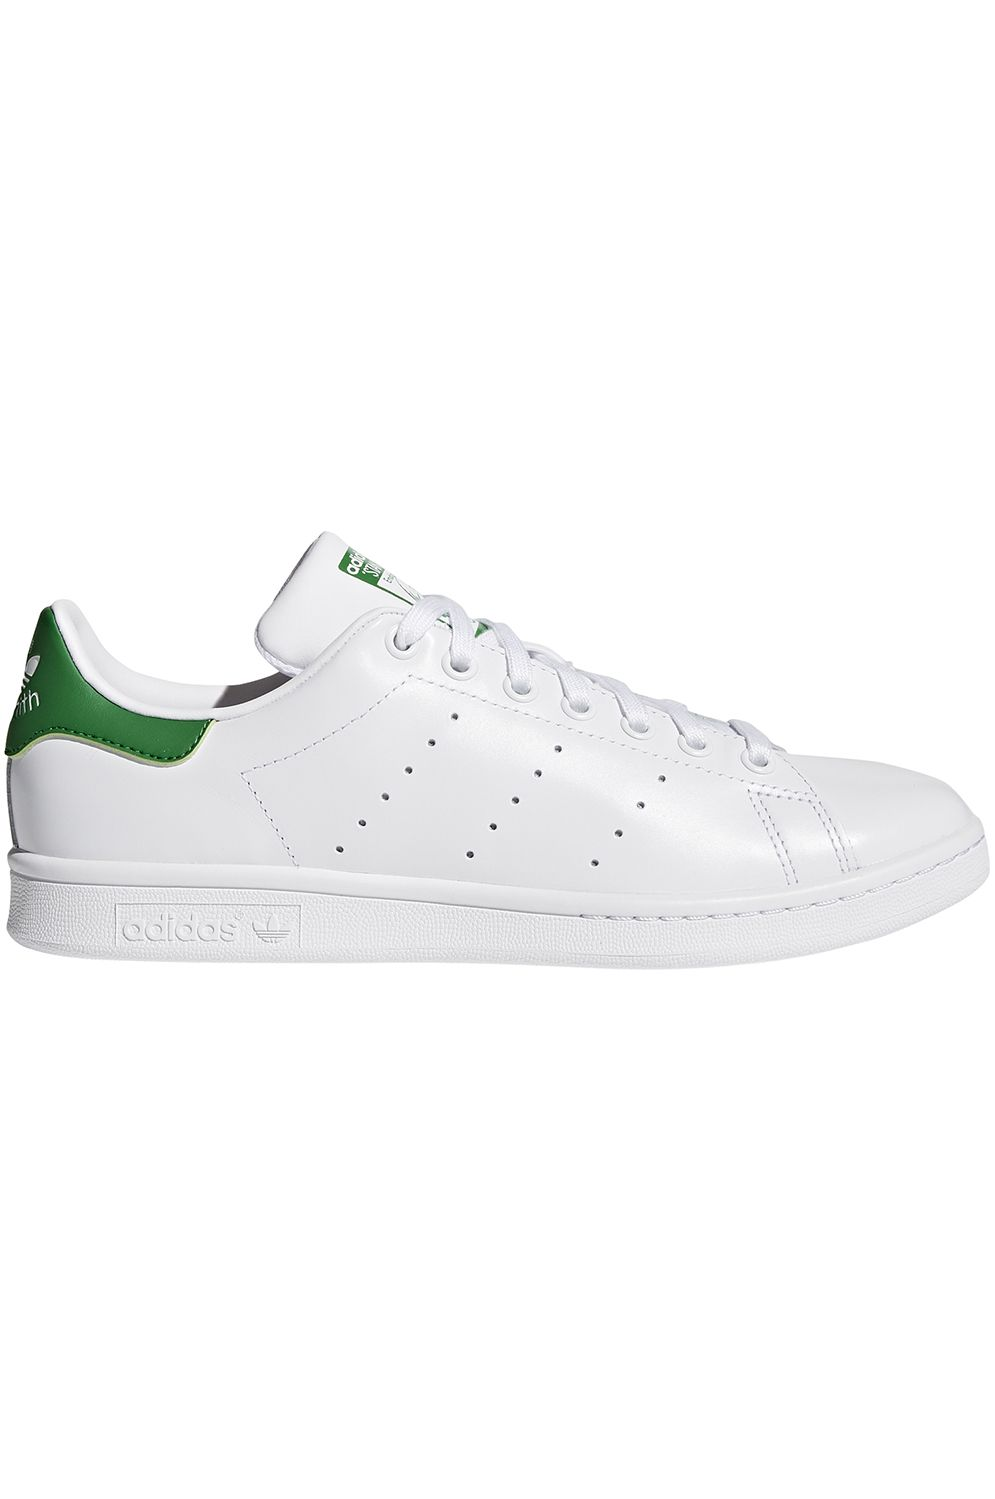 Tenis Adidas STAN SMITH Ftwr White/Core White/Green